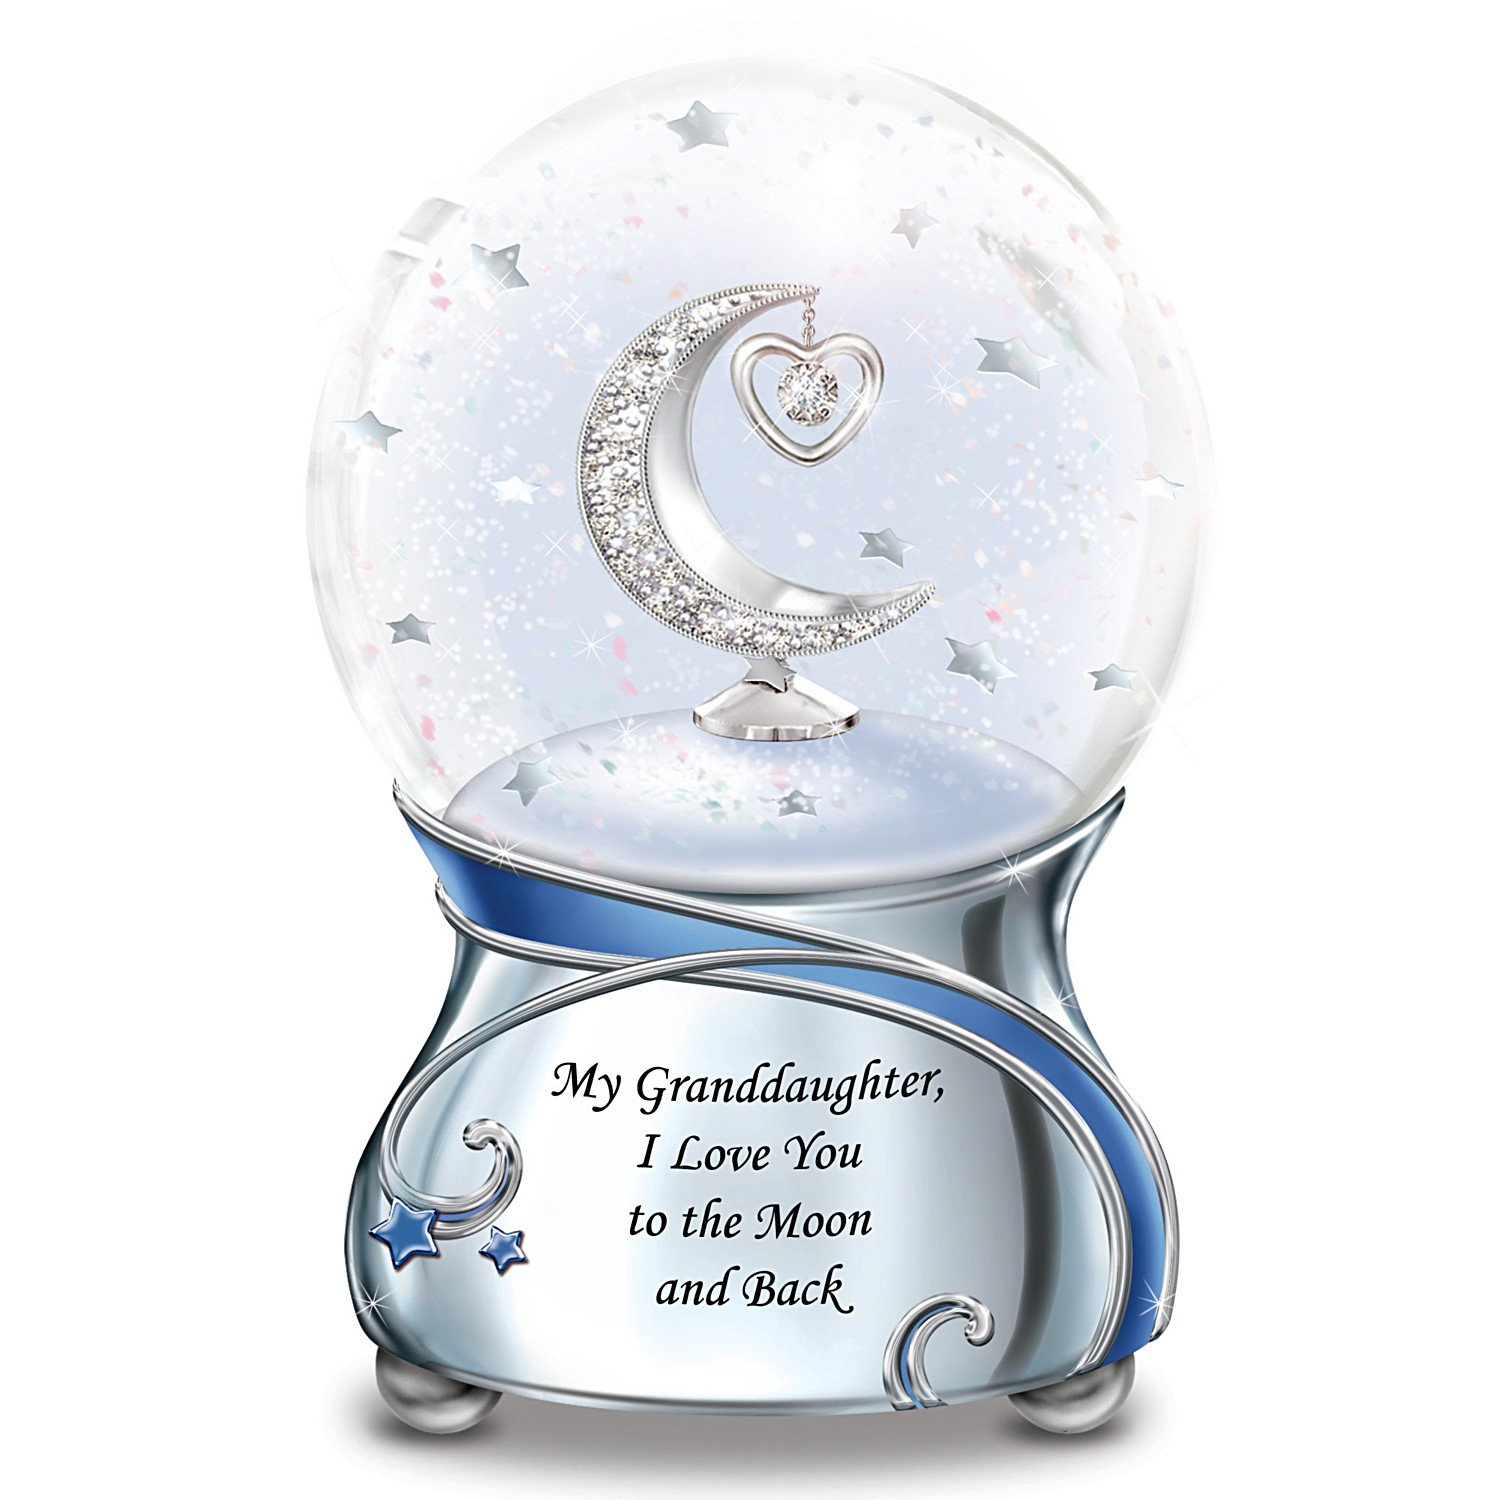 Snowglobe With Swarovski Crystal For Granddaughter Plays Always In My Heart by The Bradford Exchange by Bradford Exchange